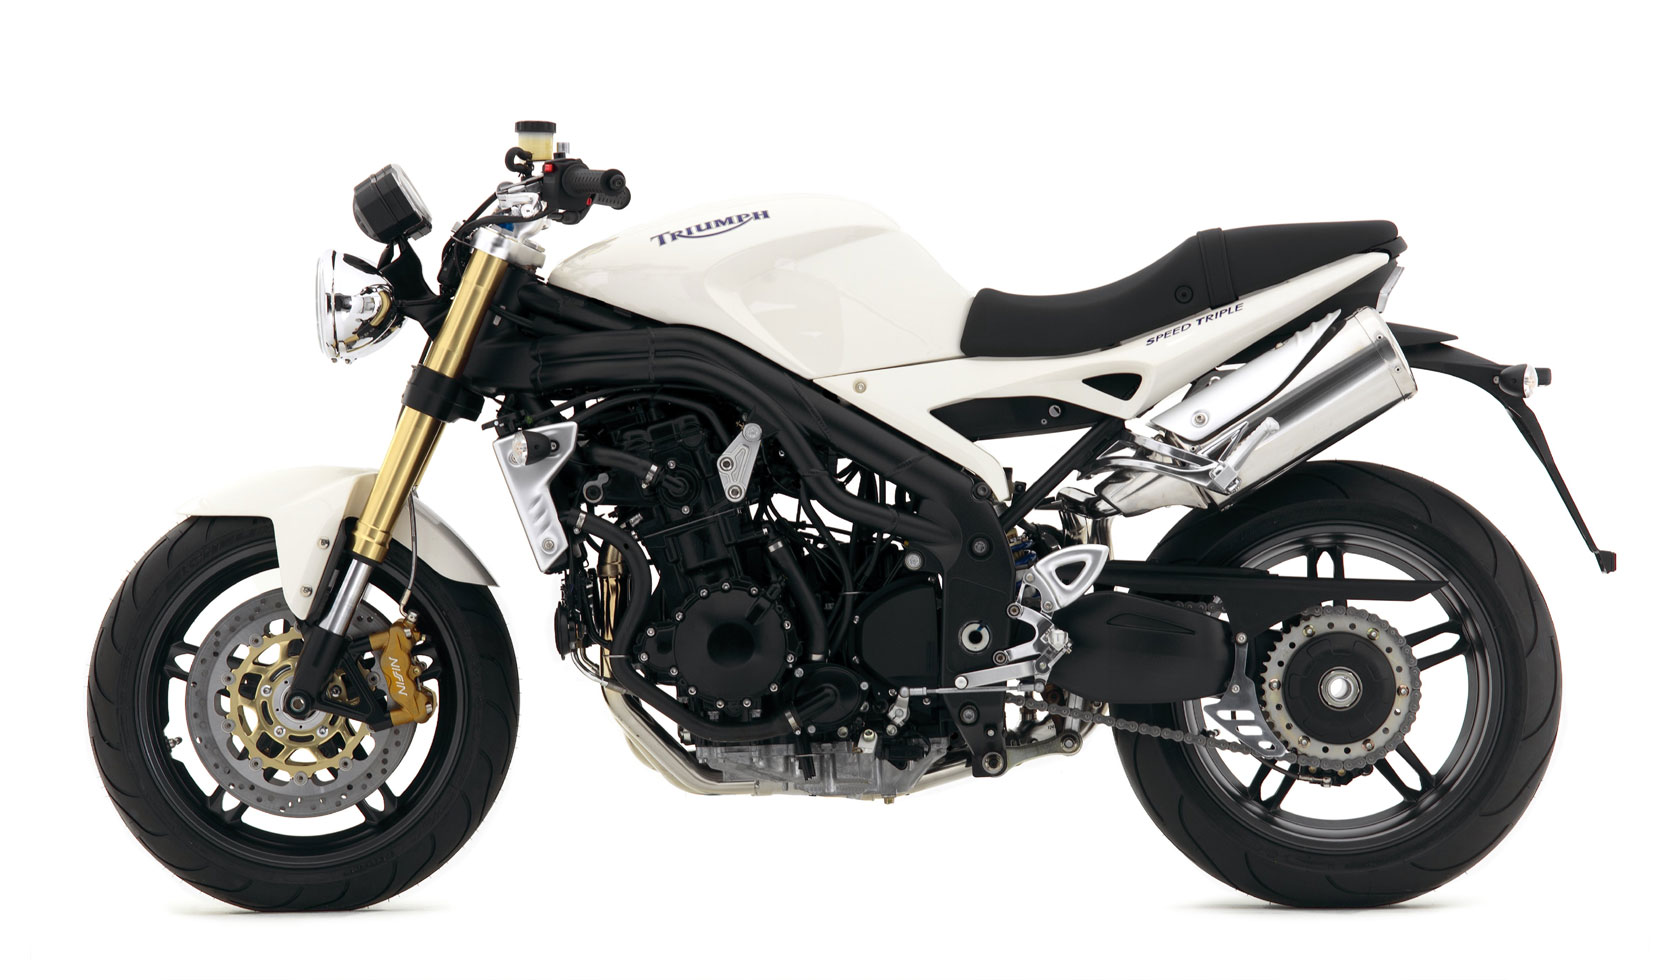 Triumph Speed Triple 1050 2007 images #125858